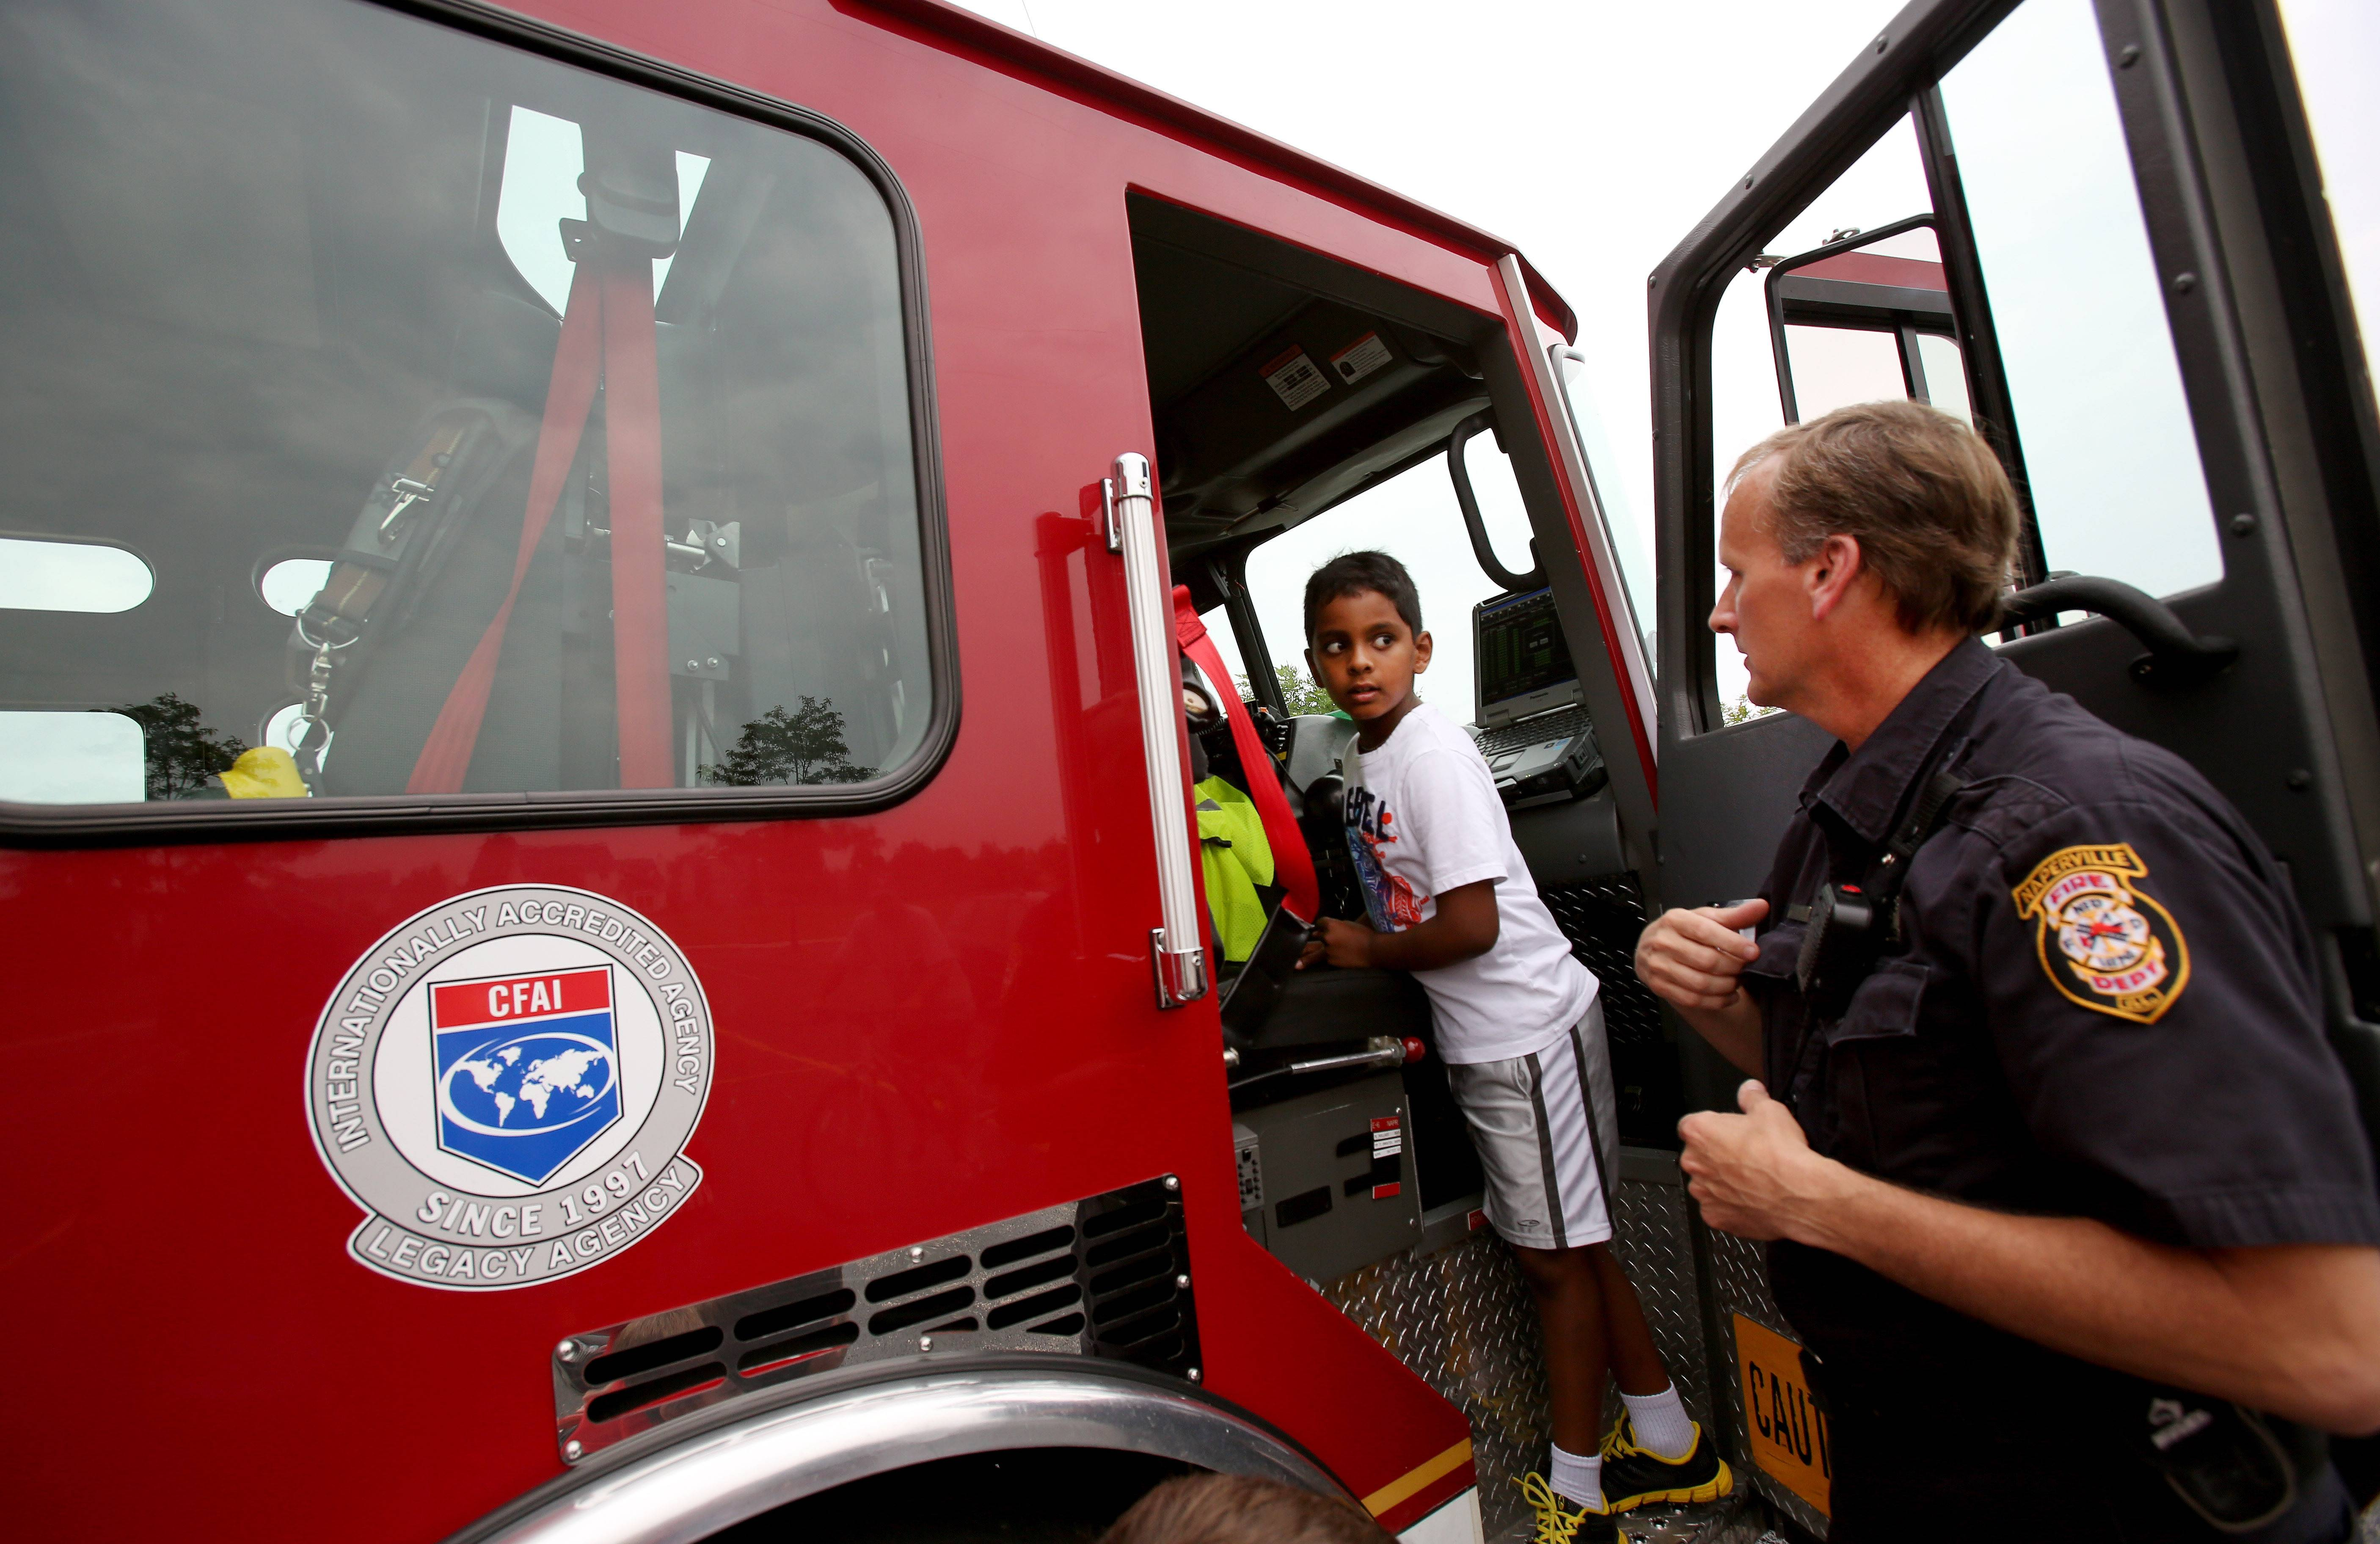 National Night Out events are scheduled throughout the region Tuesday night and give participants of all ages the chance to check out some emergency vehicles. One of the newest events will be held at Benedictine University in Lisle.